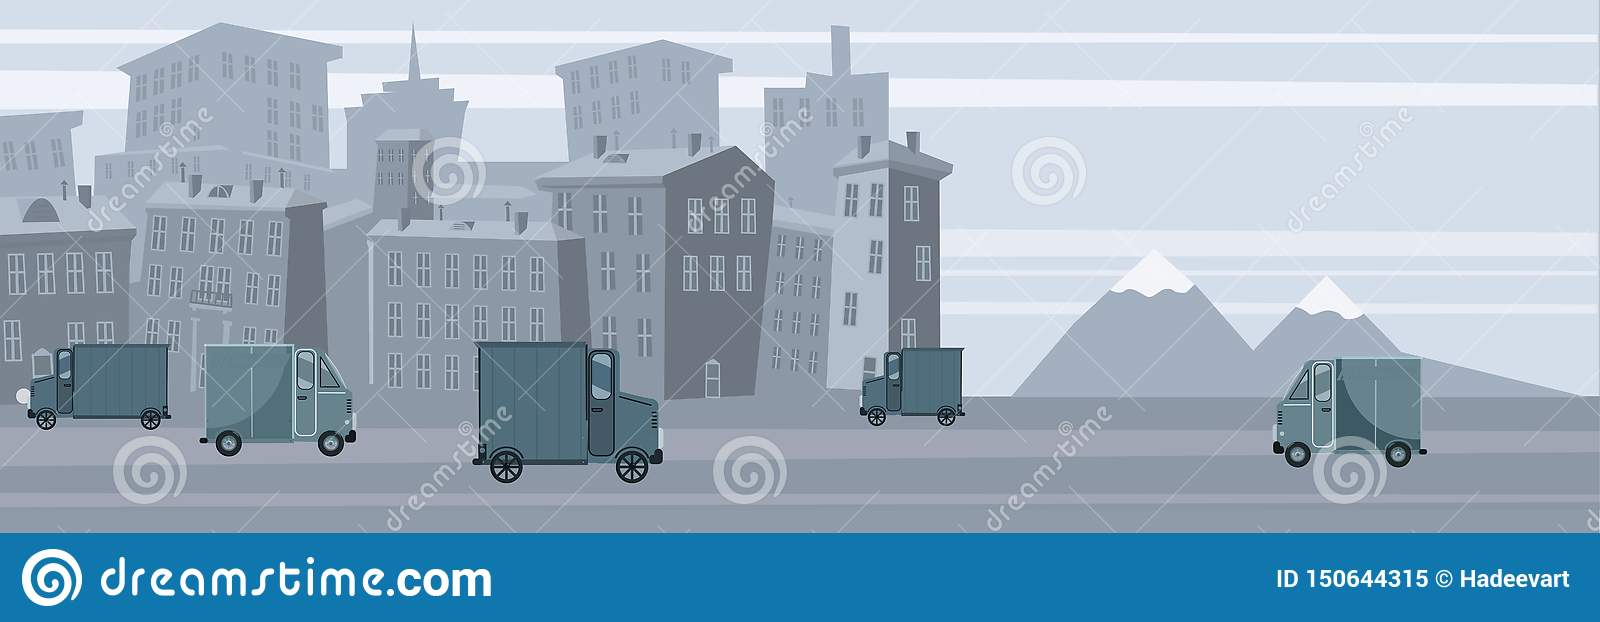 Delivery, truck transporting cargo to the recipient, urban landscape background, vector, banner, illustration, cartoon